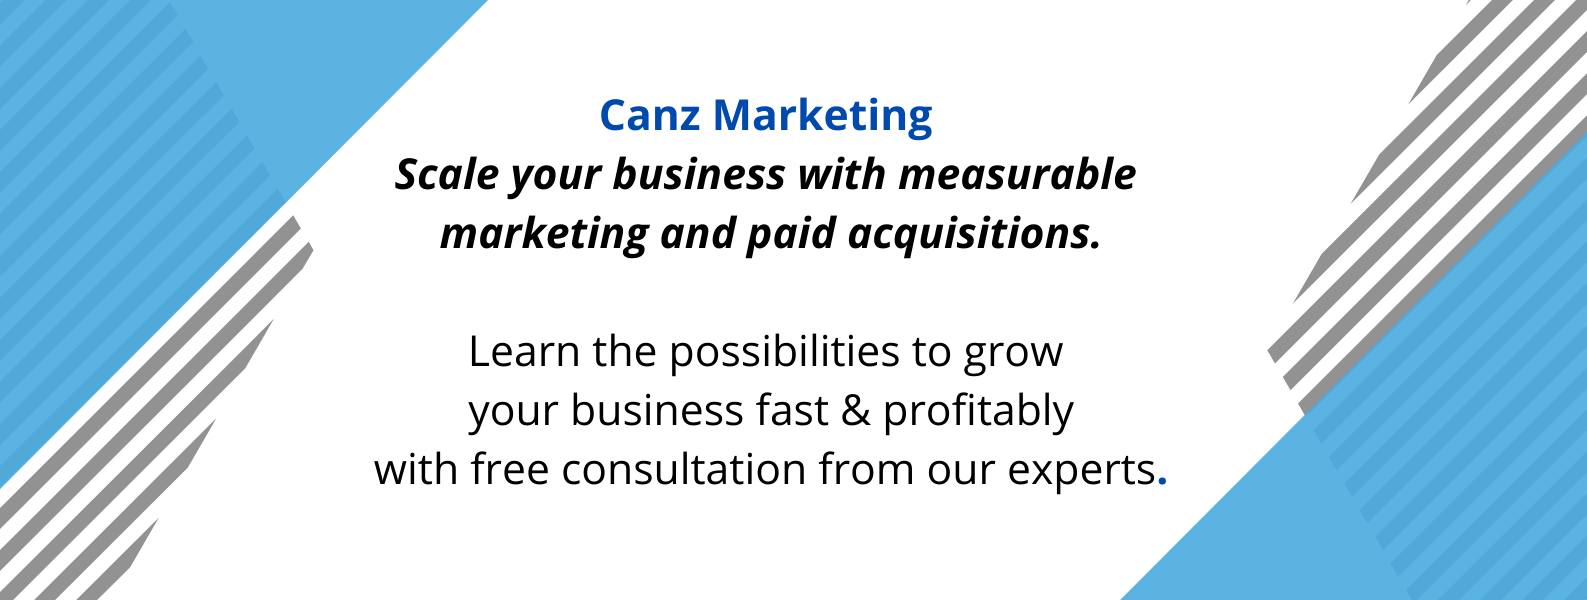 Unique selling proposition of Canz Marketing, a digital marketing agency.